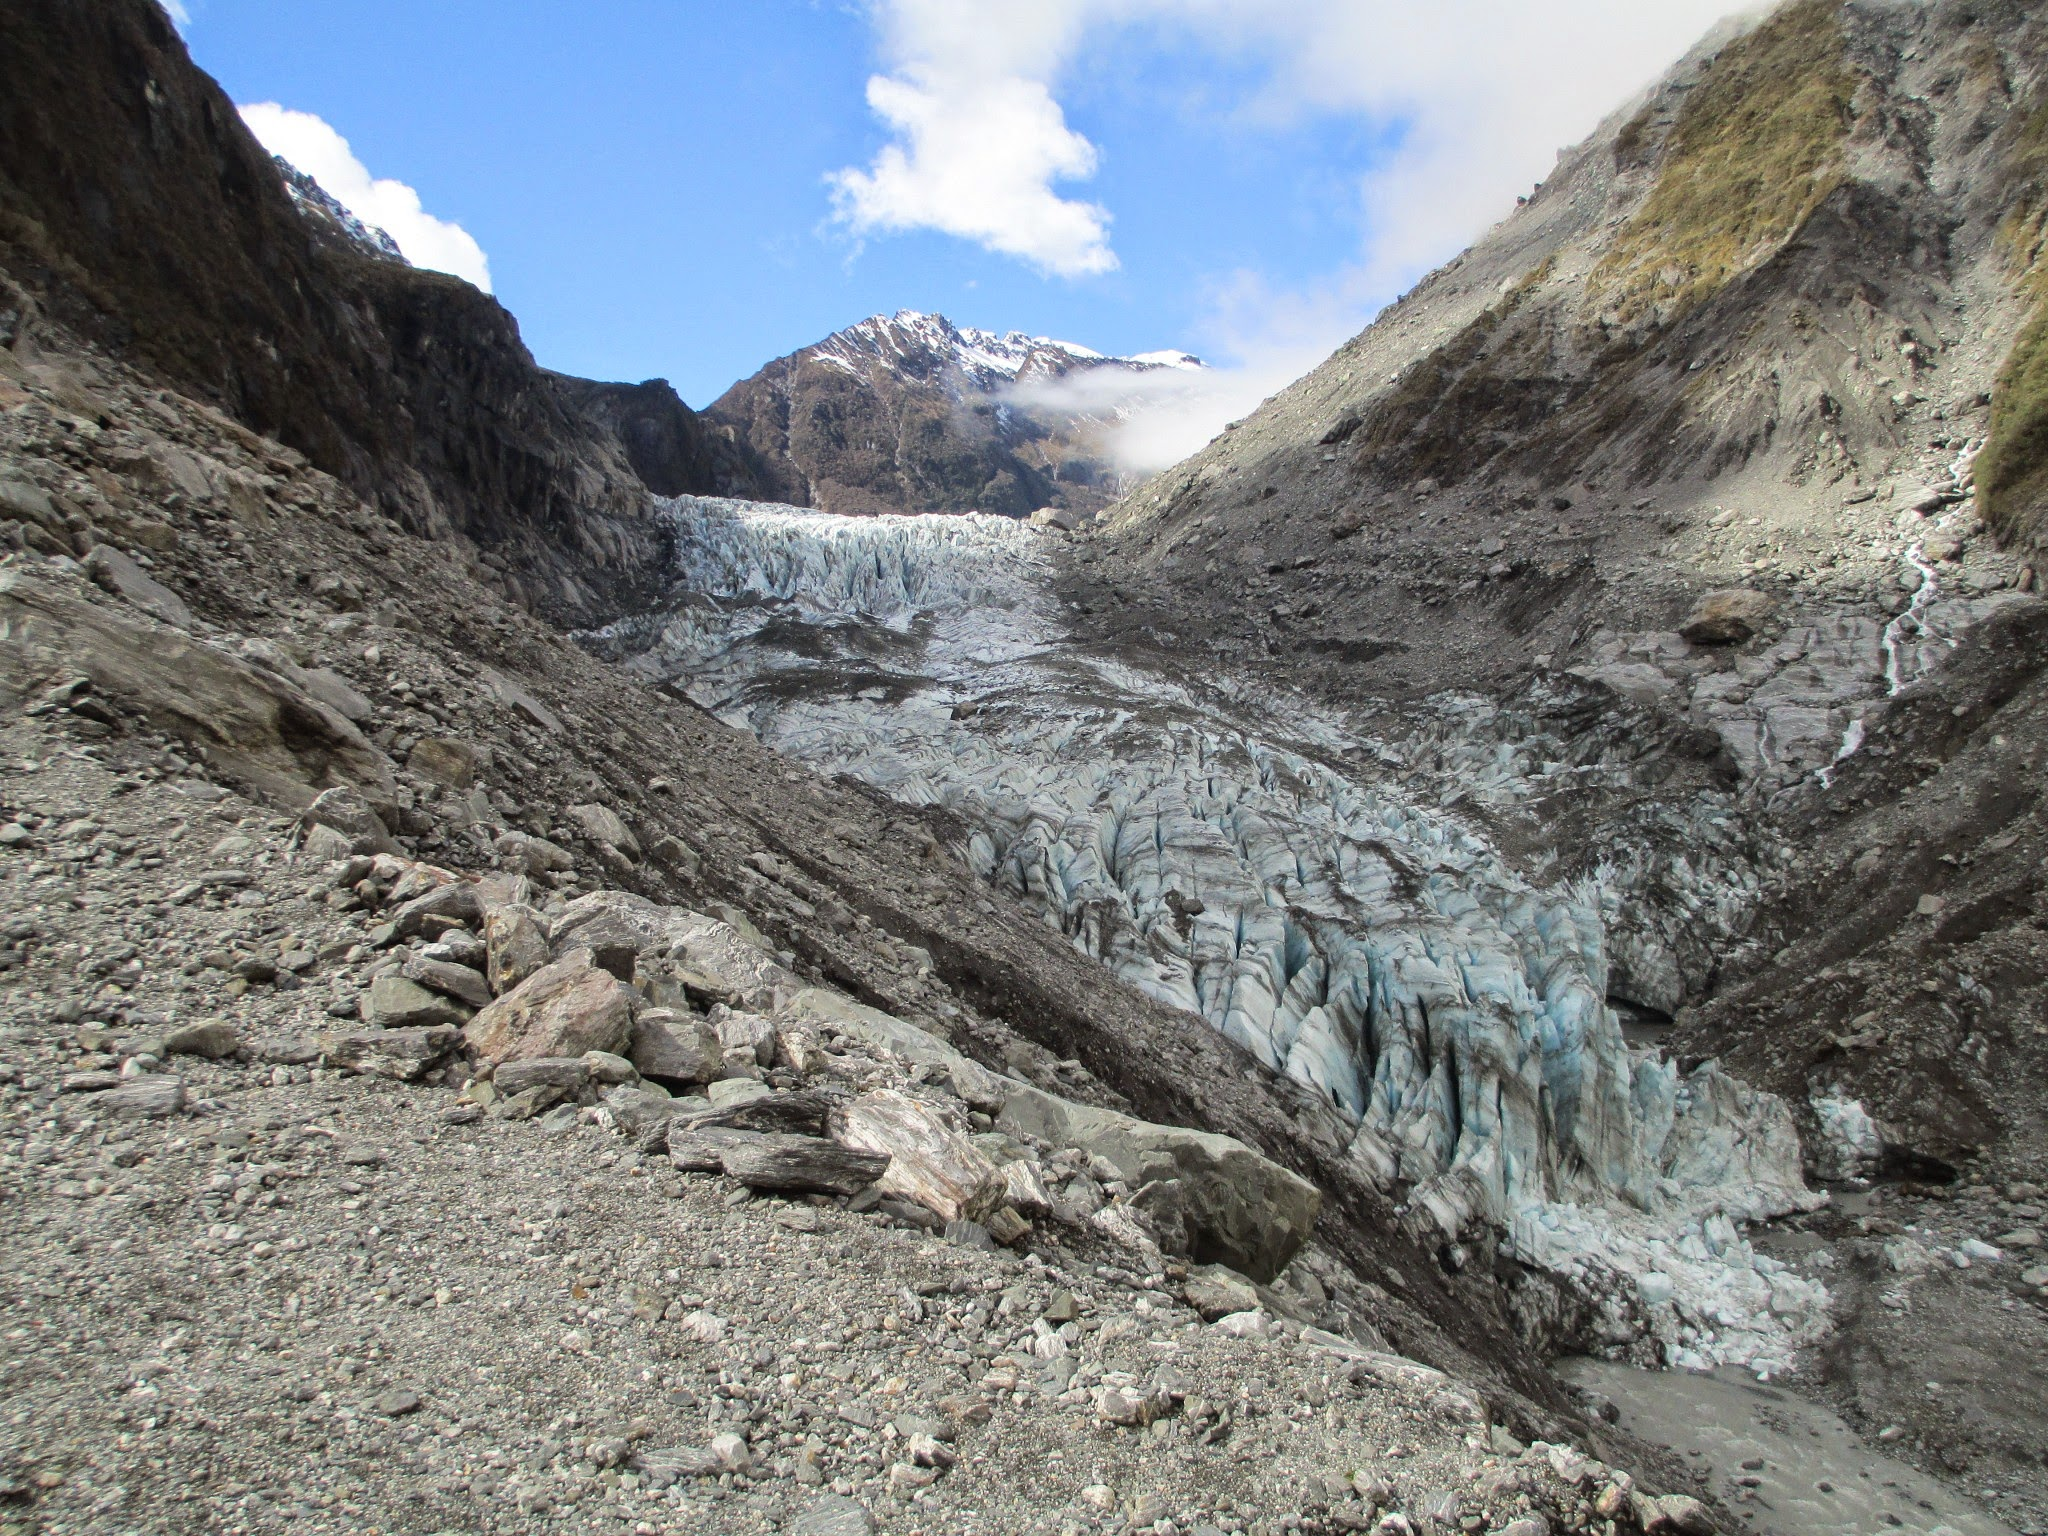 Franz Josef Glacier, glacier, franz josef, ice, south island, west coast, new zealand